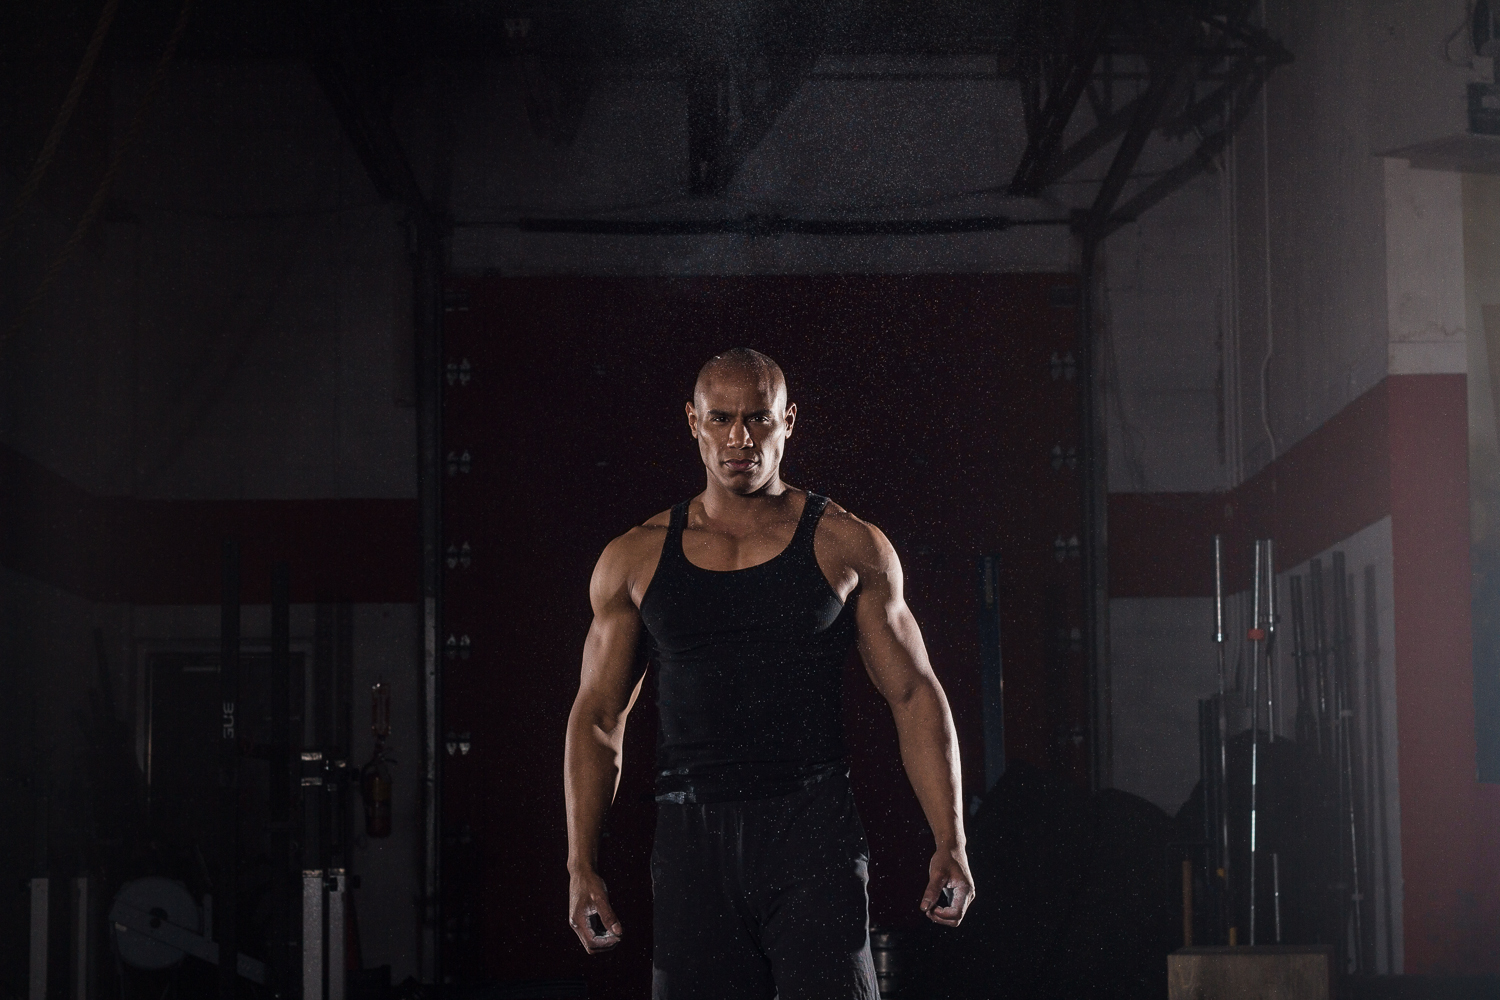 Fitness-Test-Shoot-with-Kyro-Parry-photo-by-Kevin-Patrick-Robbins-009.jpg